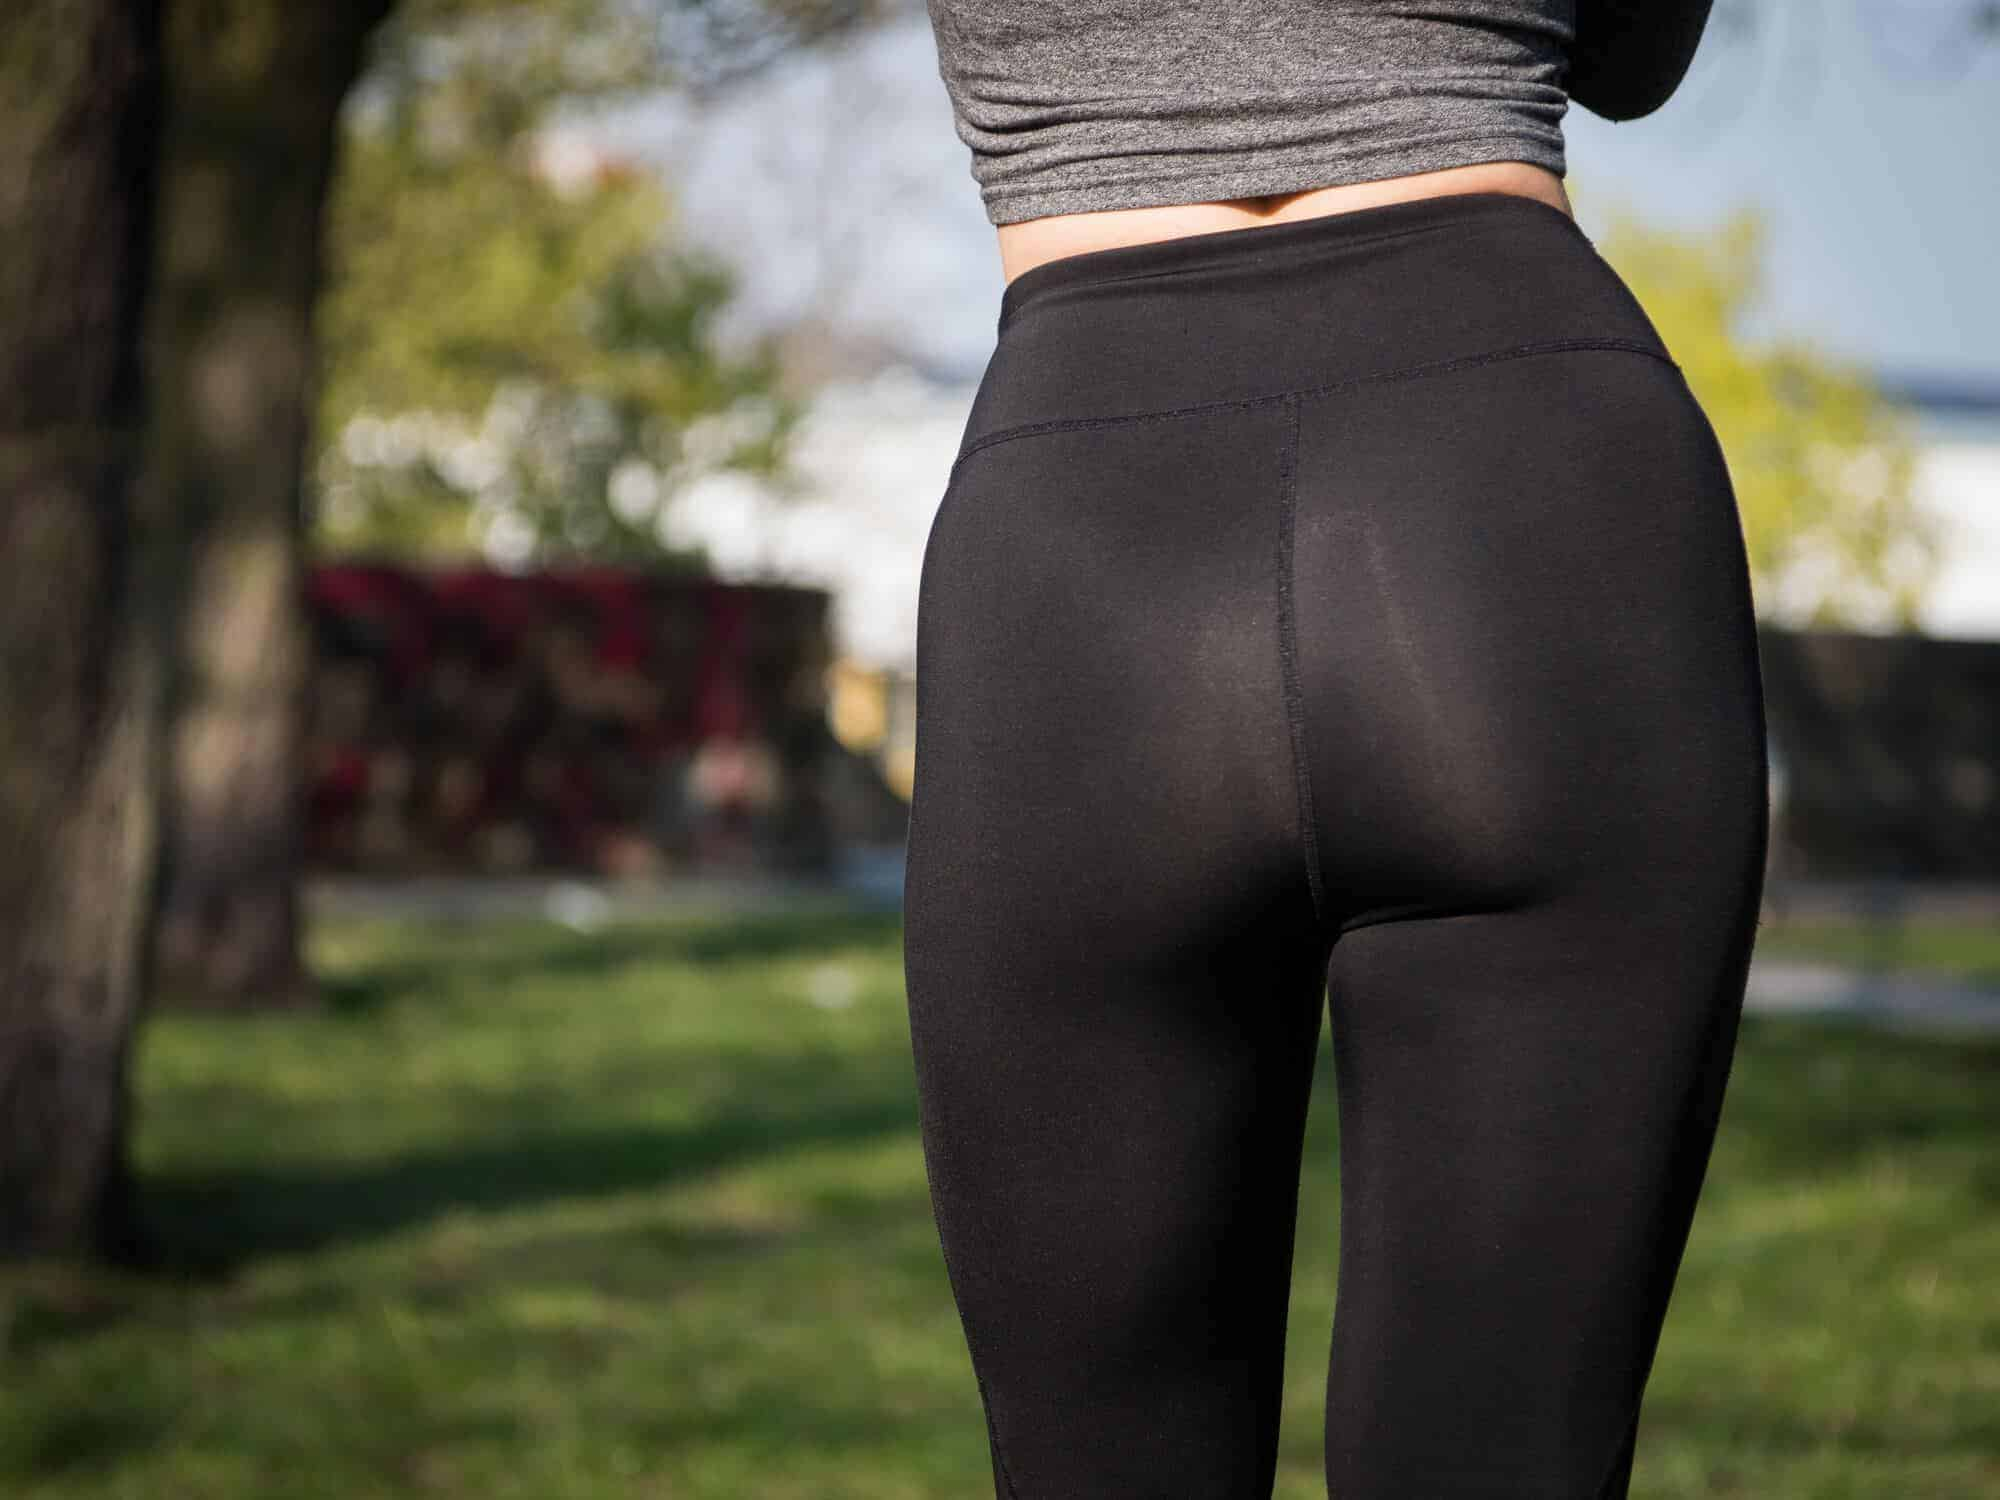 Tetrahydrofuran THF is used in making Spandex and Lycra